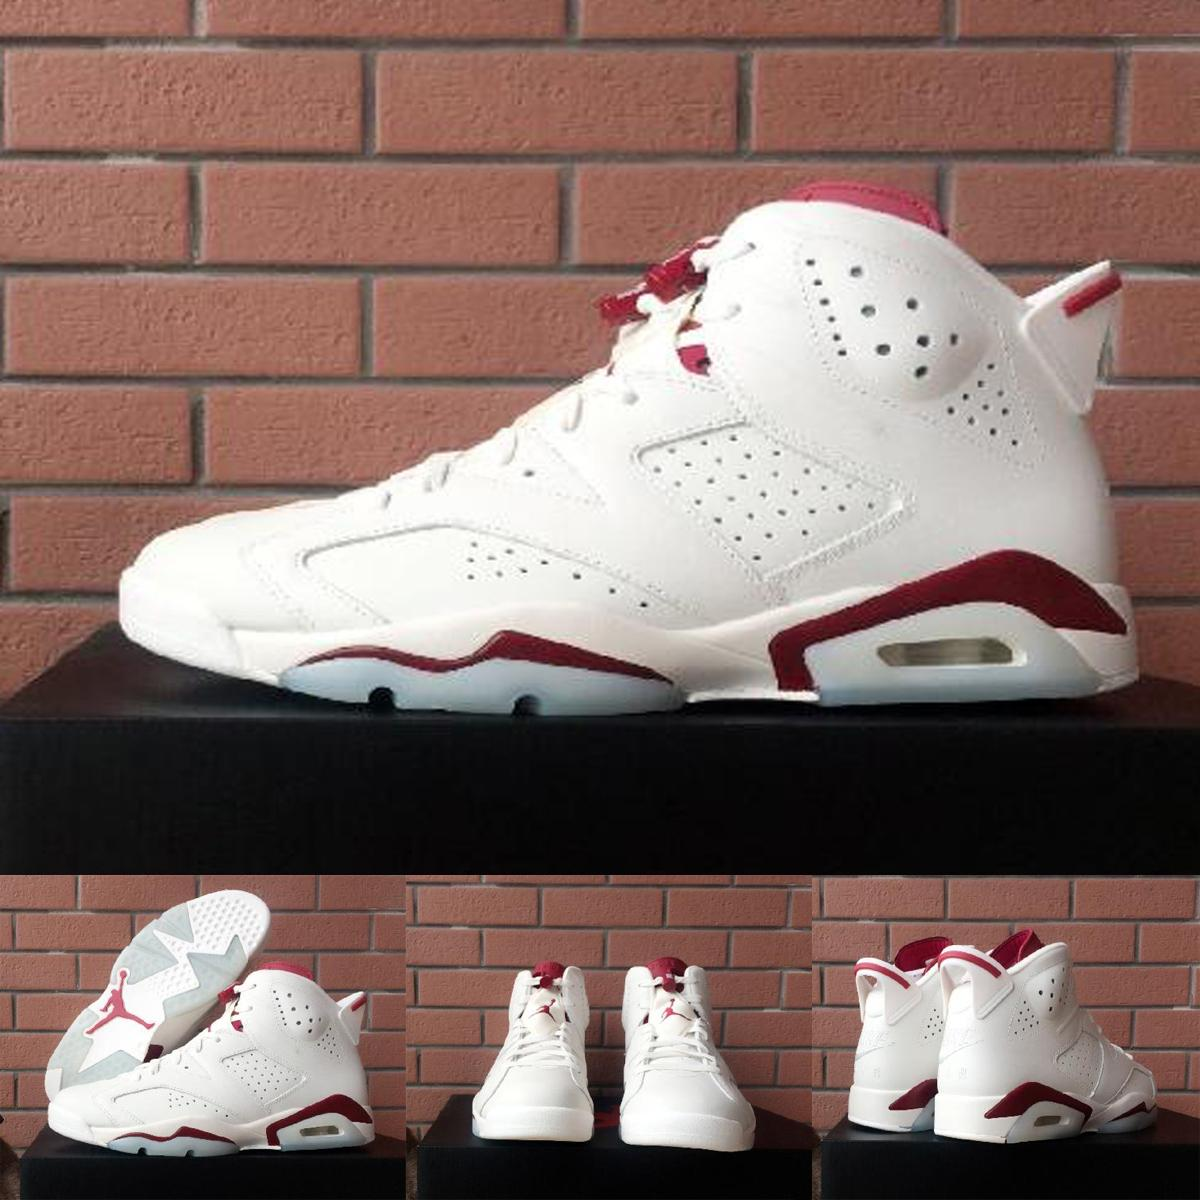 newest collection 7ae6f 040e7 ... Nike Air Jordan 6 Maroon Mens Jordan Pro Strong White Black Red shoes |  PADDER HEALTH SERVICES, LLC.